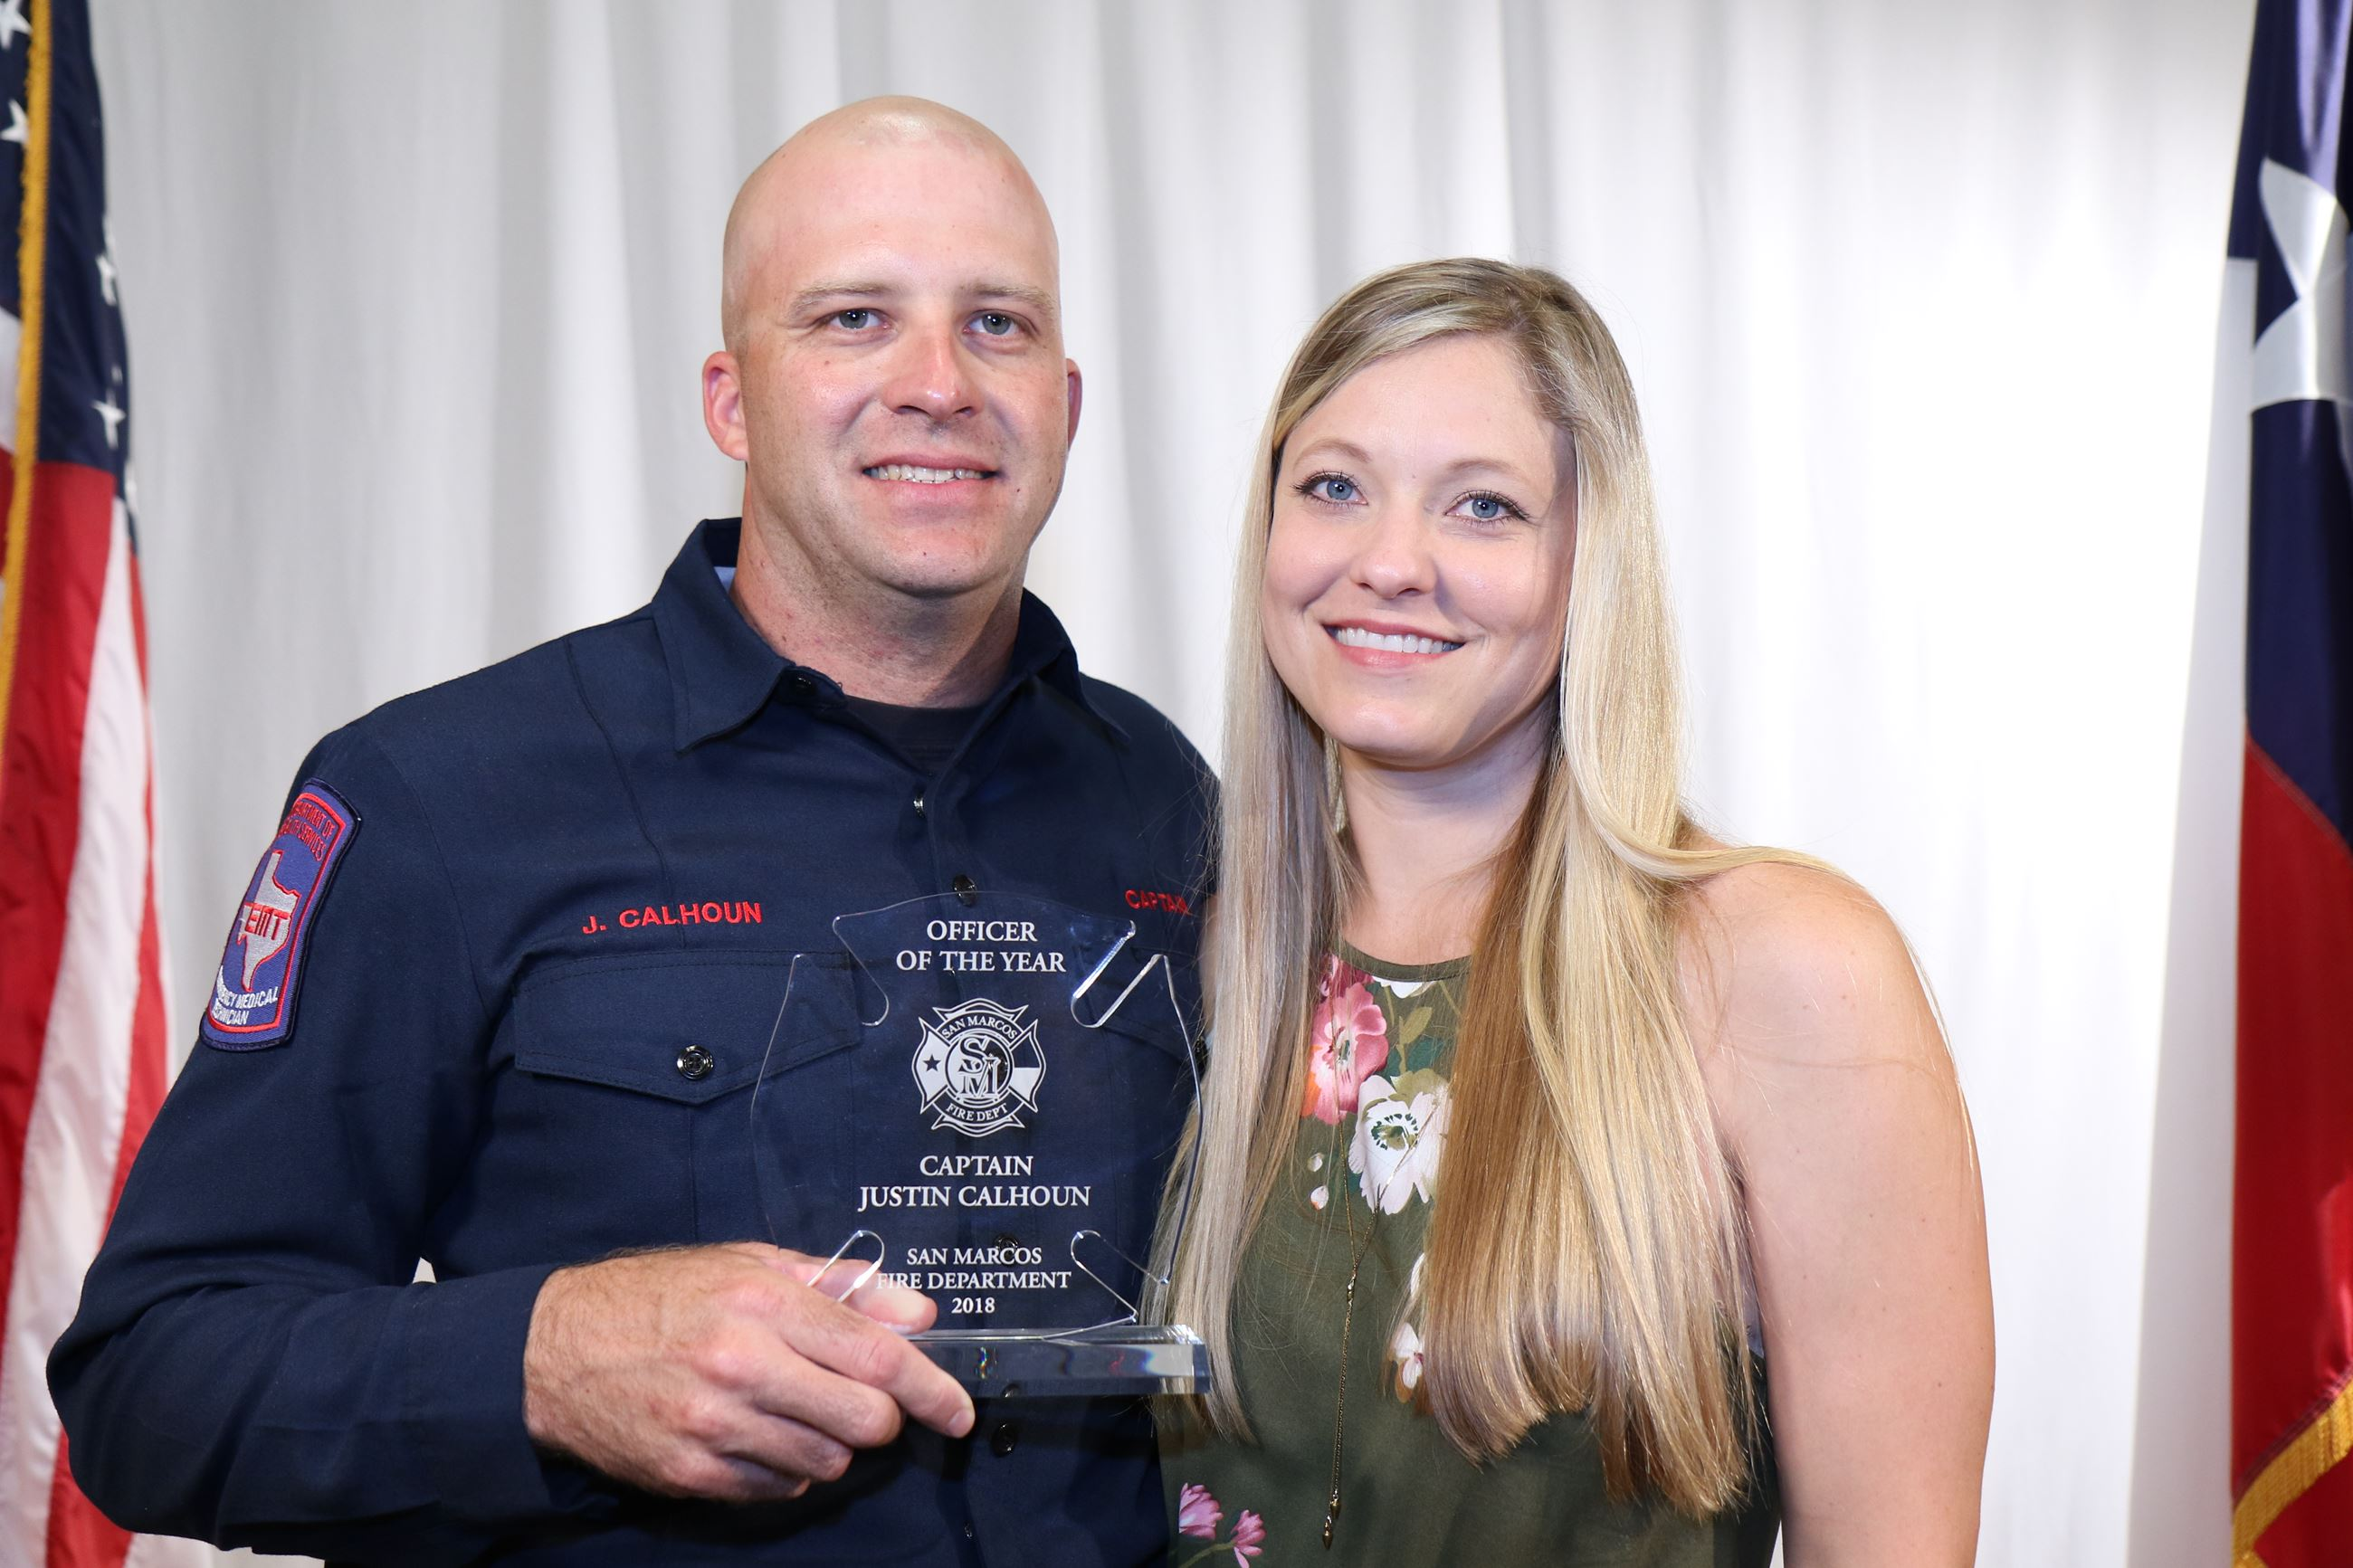 Captain Justin Calhoun received the prestigious award of Office of the Year. Pictured with his wife,